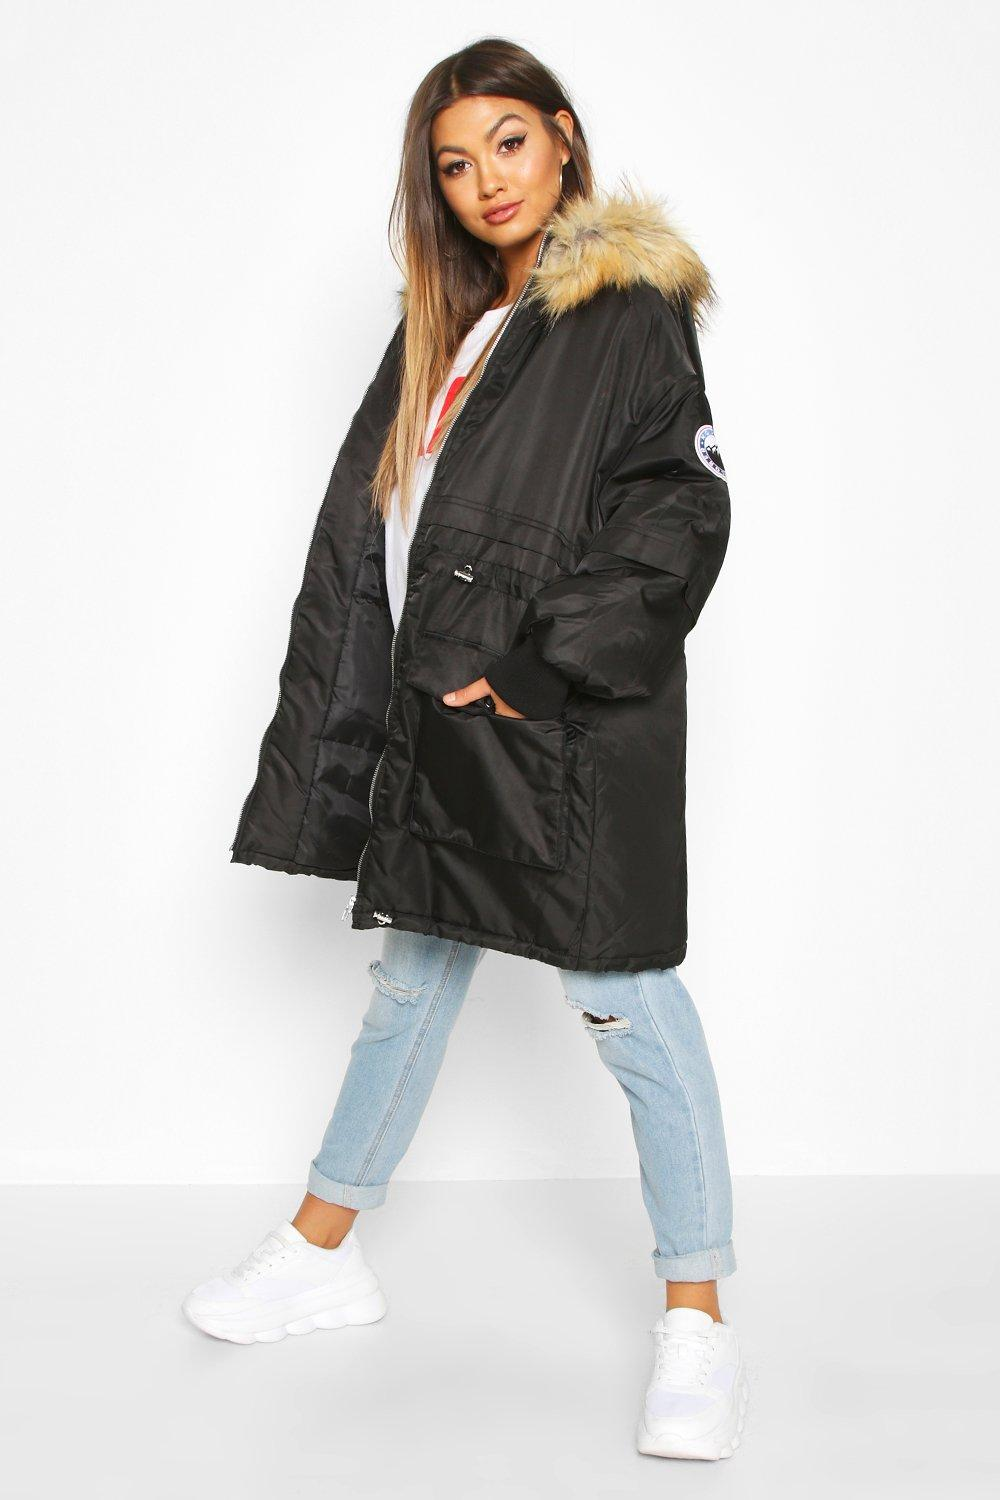 boohoo Womens Faux Fur Trim Oversized Parka - Black - 12, Black